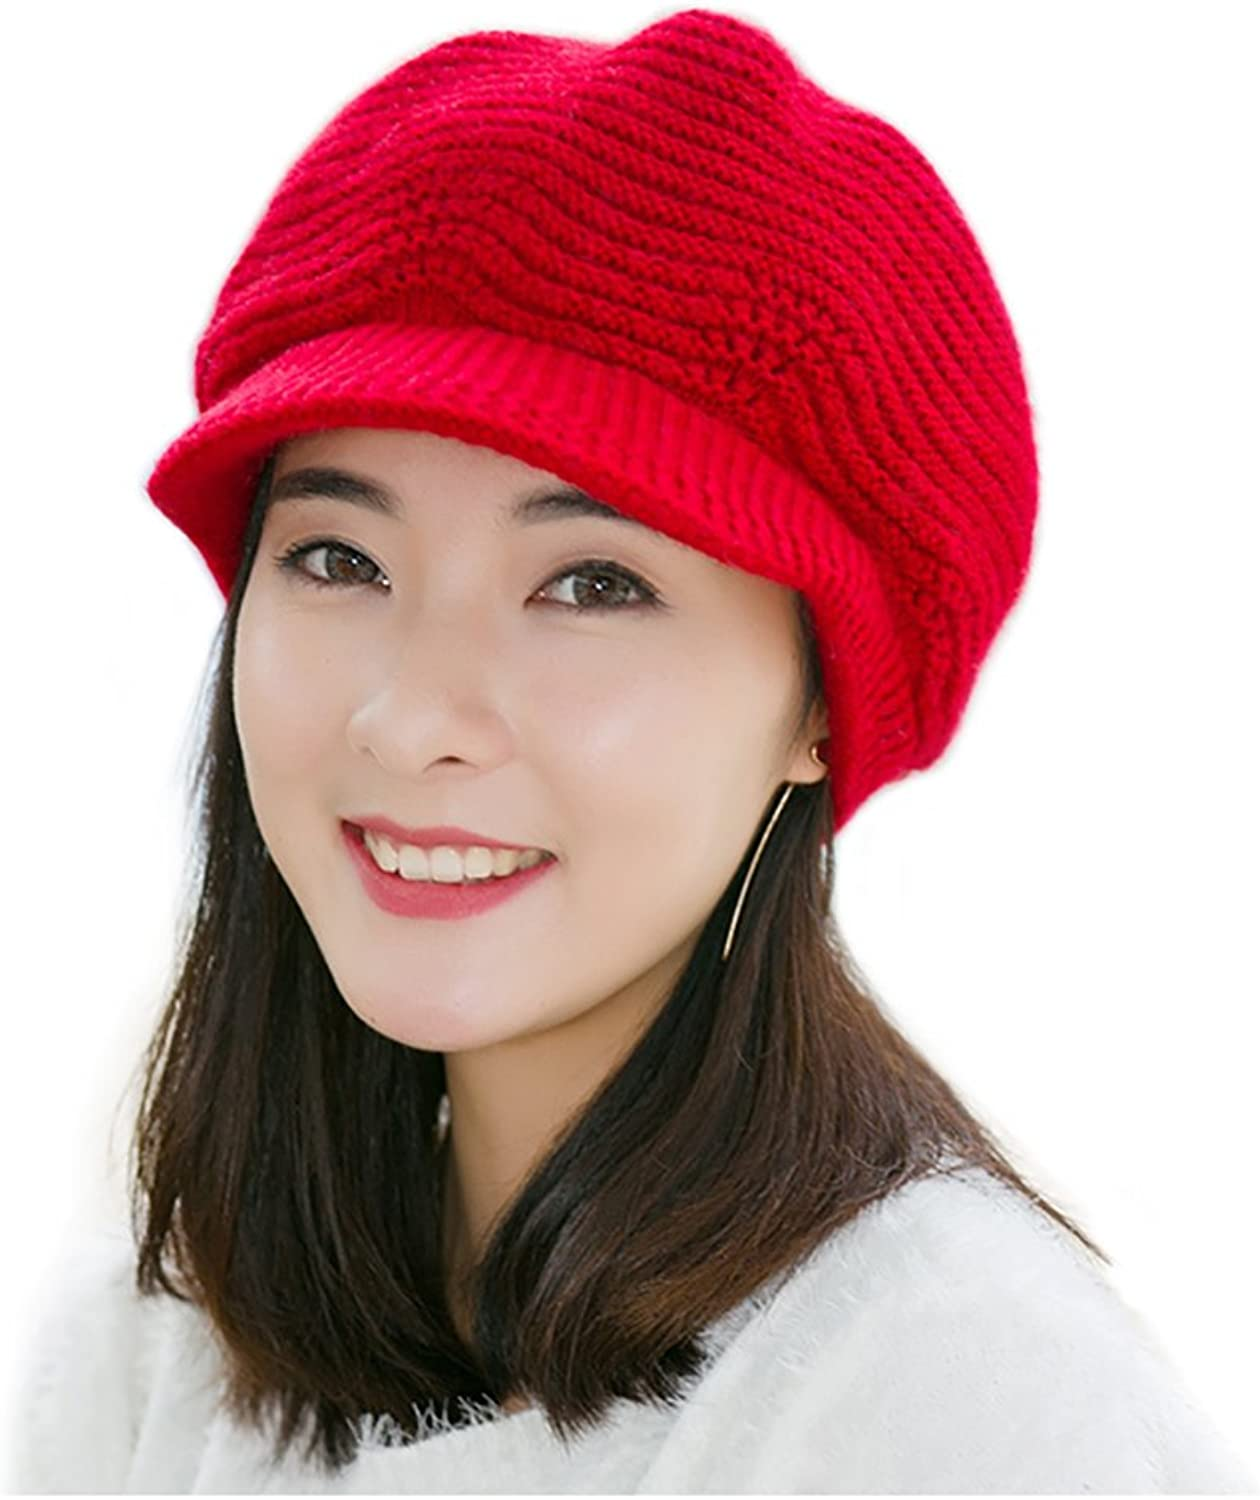 7d32987dc70 Proboths Knit Hat, Winter Hat Stretch Ski Beanie Cap with Visor Women  Knitted ntwegn311-New Clothing